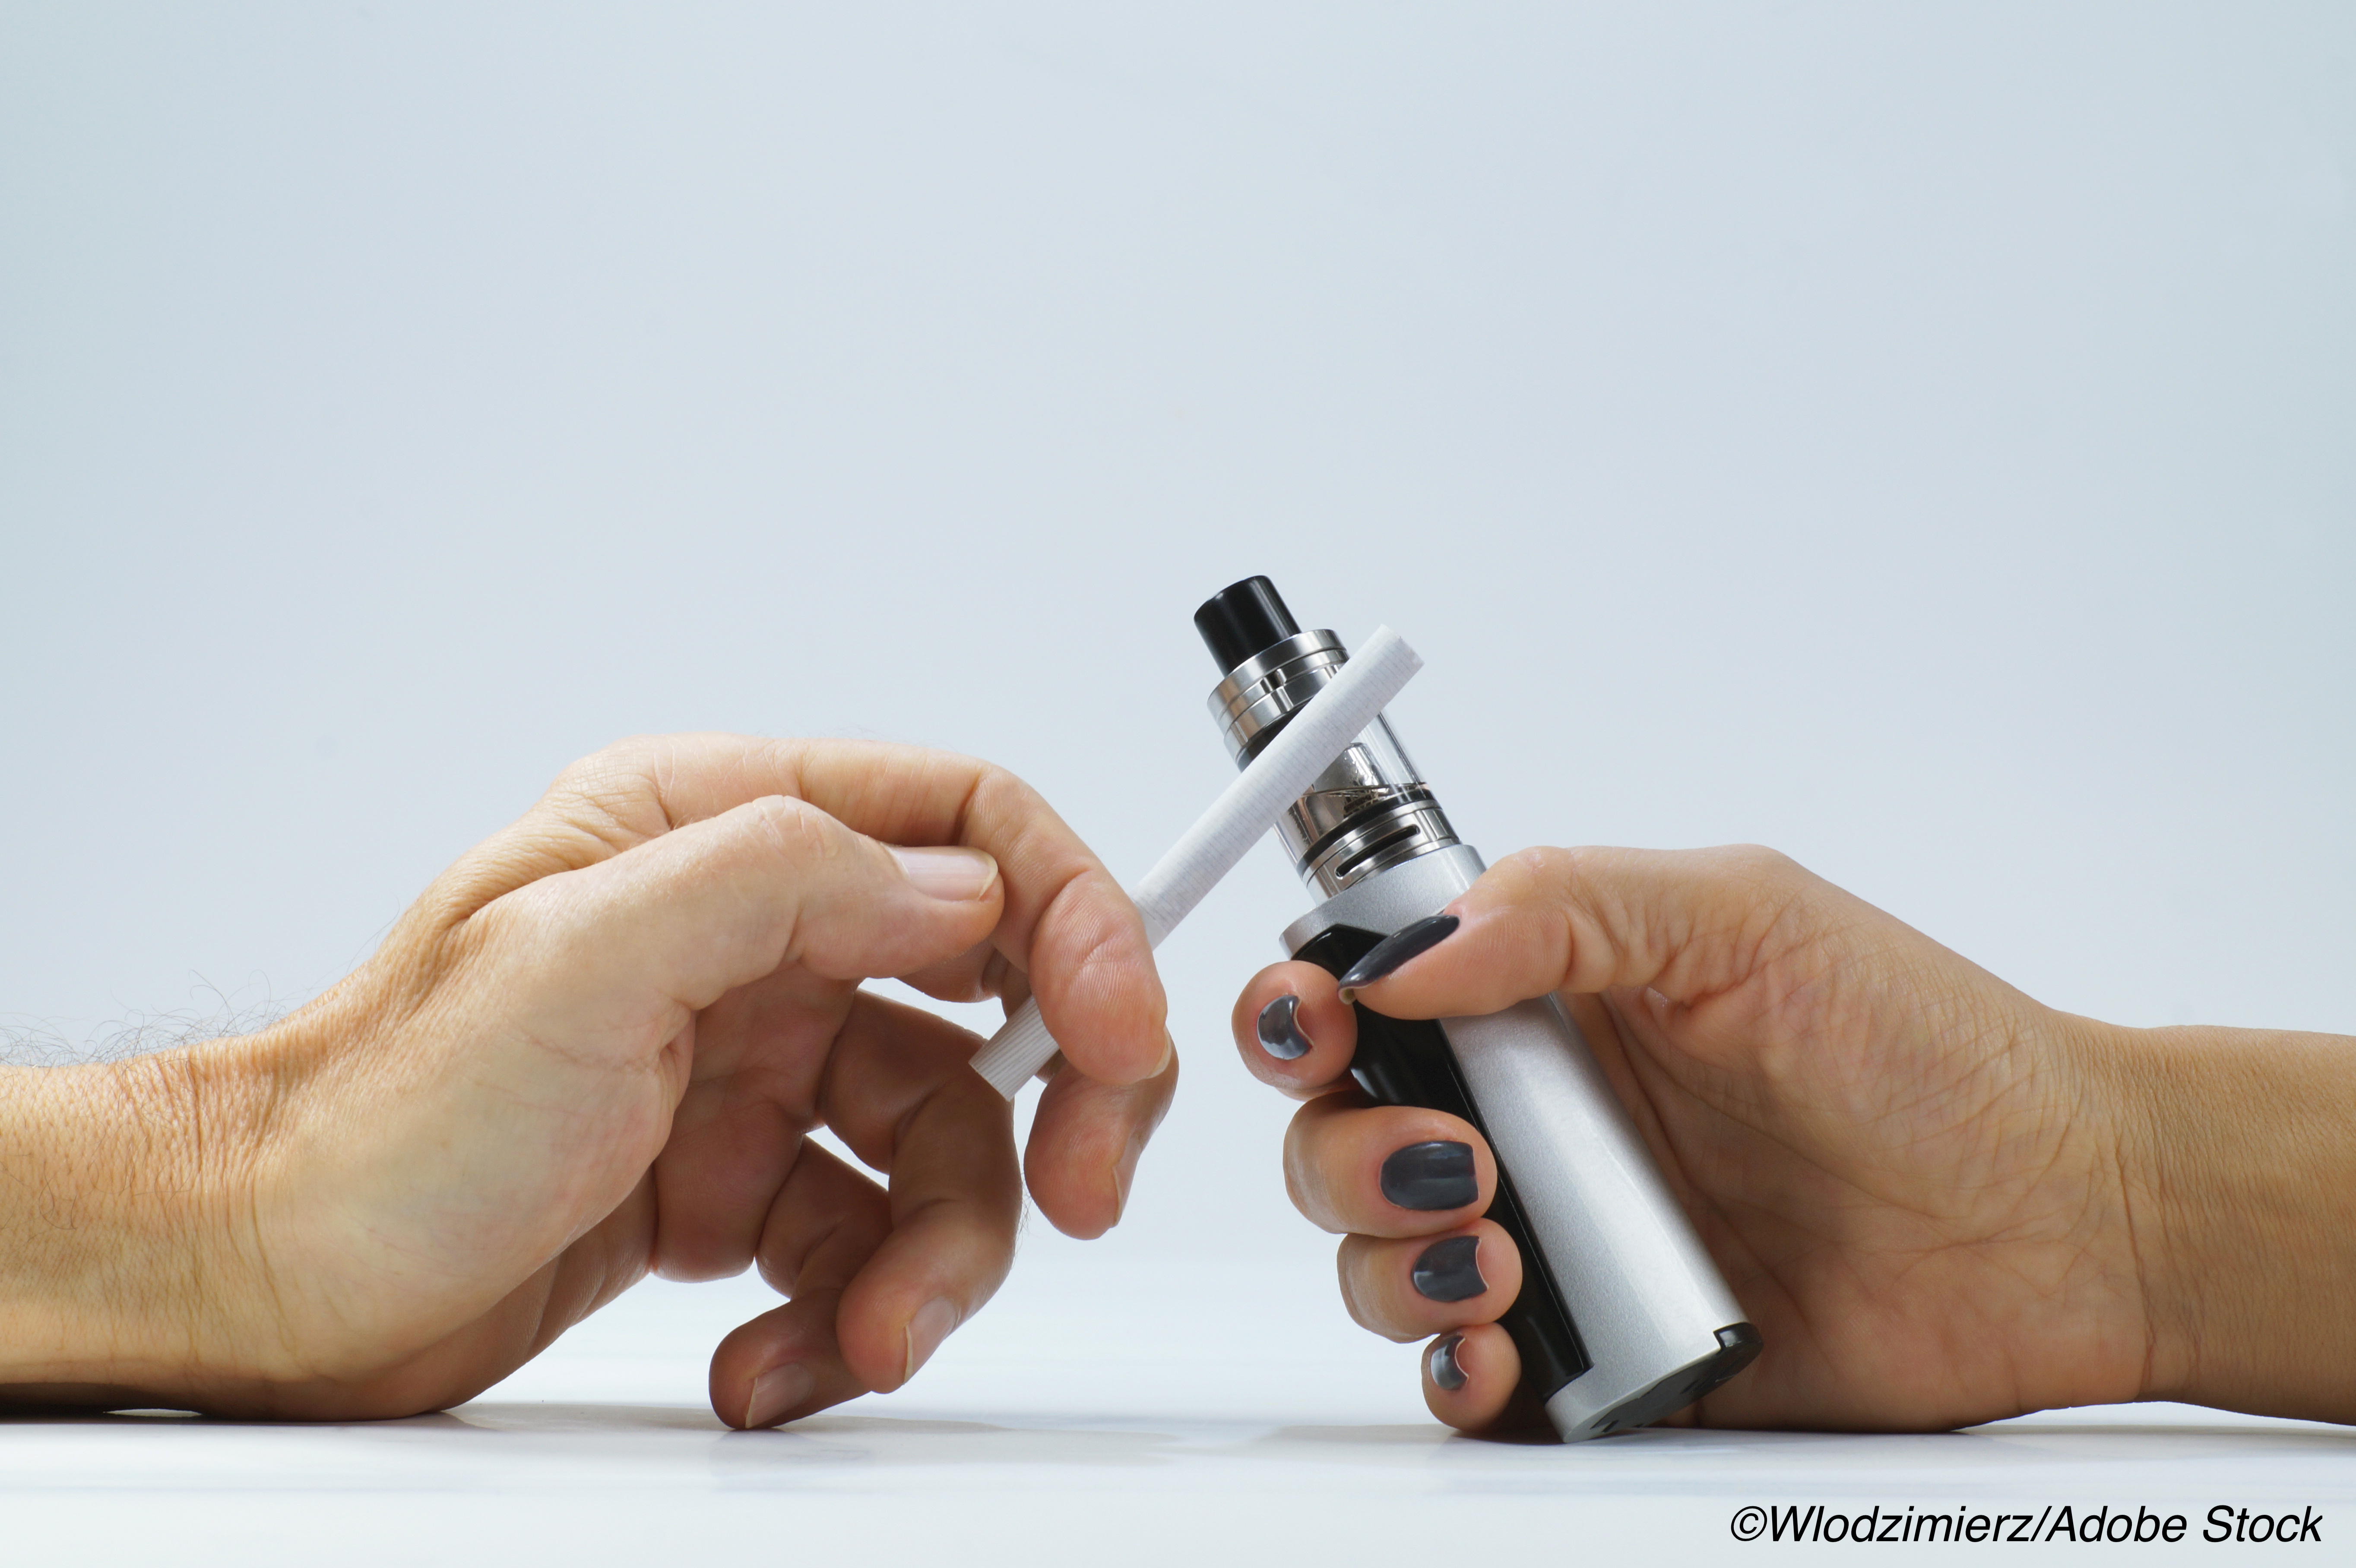 E-Cigarette Influence on Future Tobacco Use Among Young Adults Still Unknown